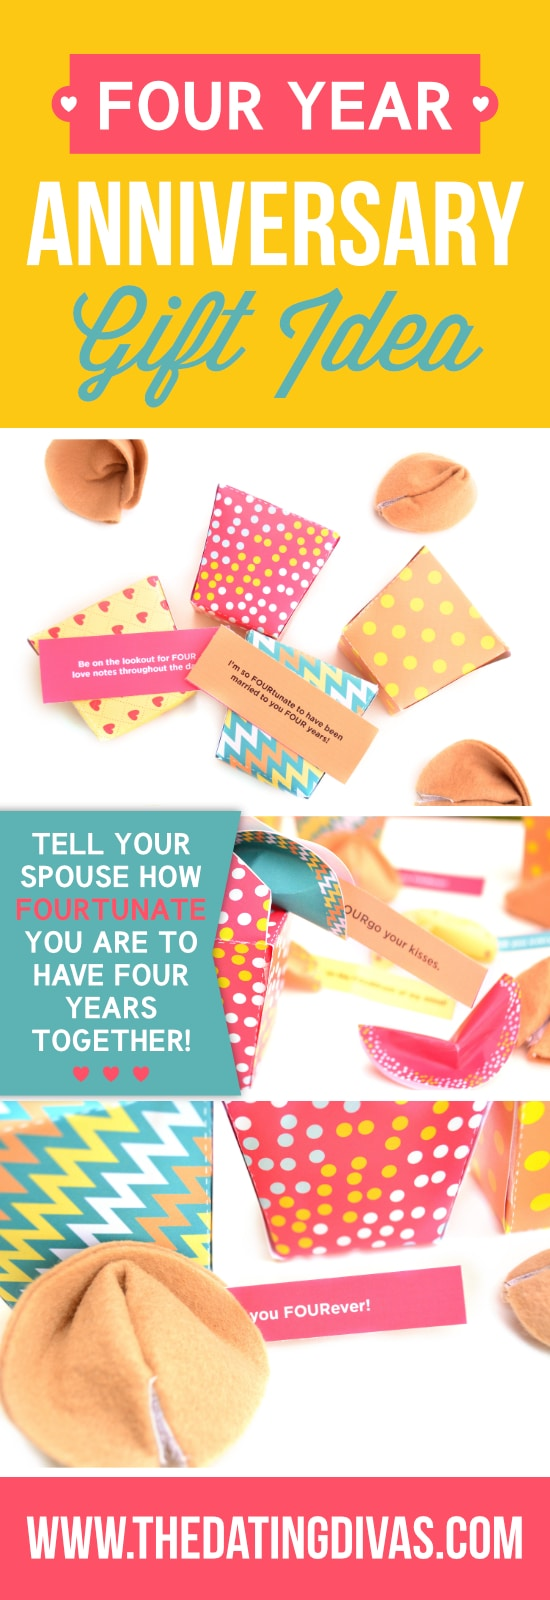 Tell your spouse how FOURtunate you are to have been together 4 years!